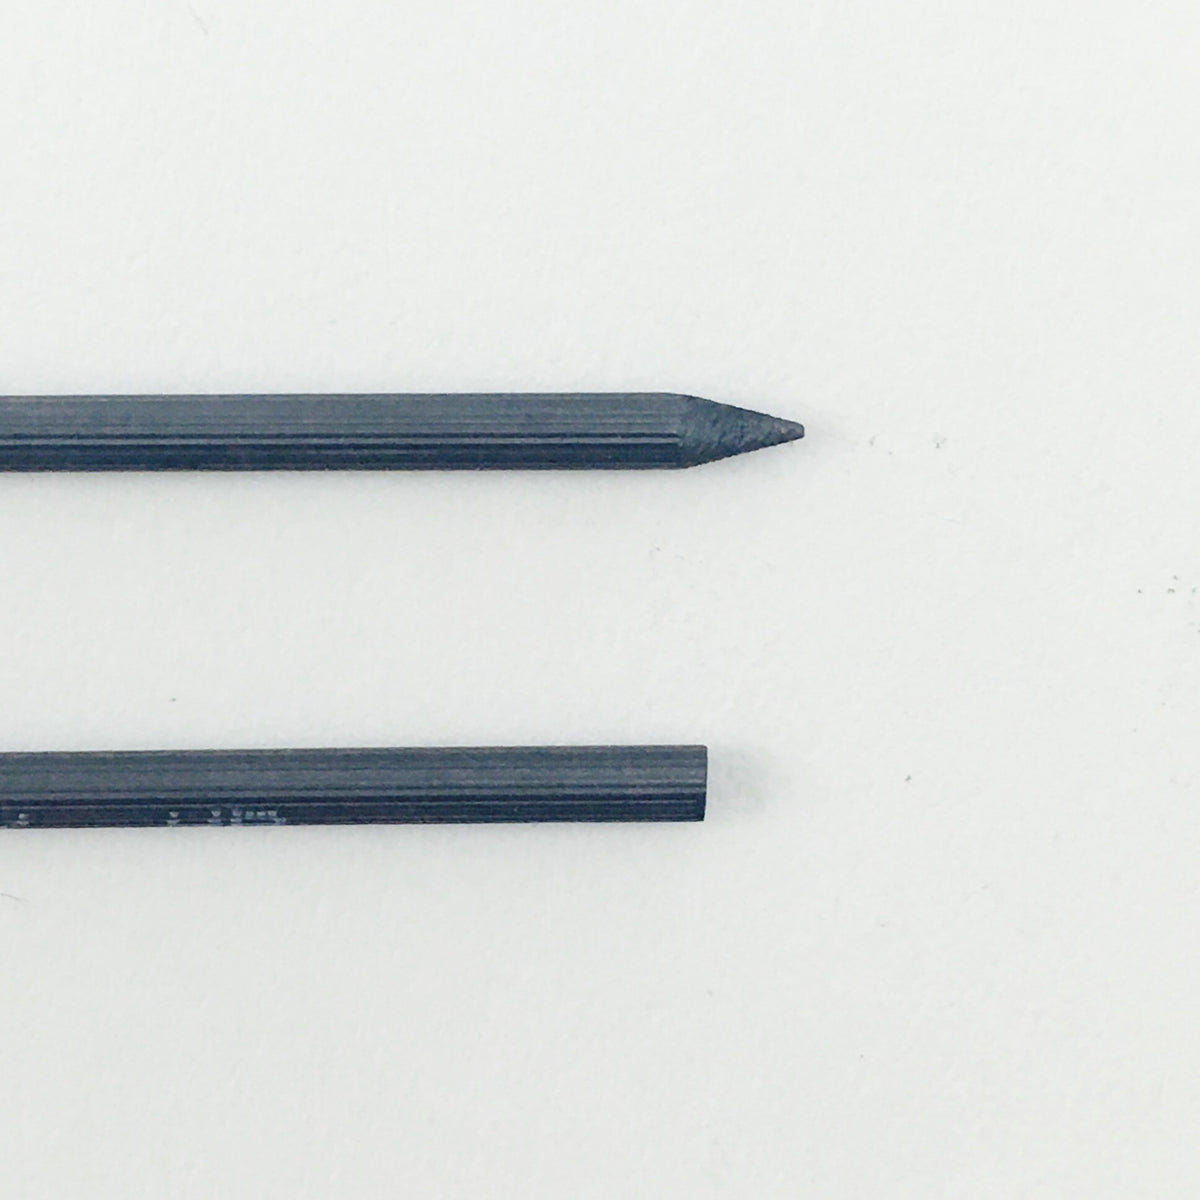 Staedtler Mars Lumograph Carbon Leads - 2mm